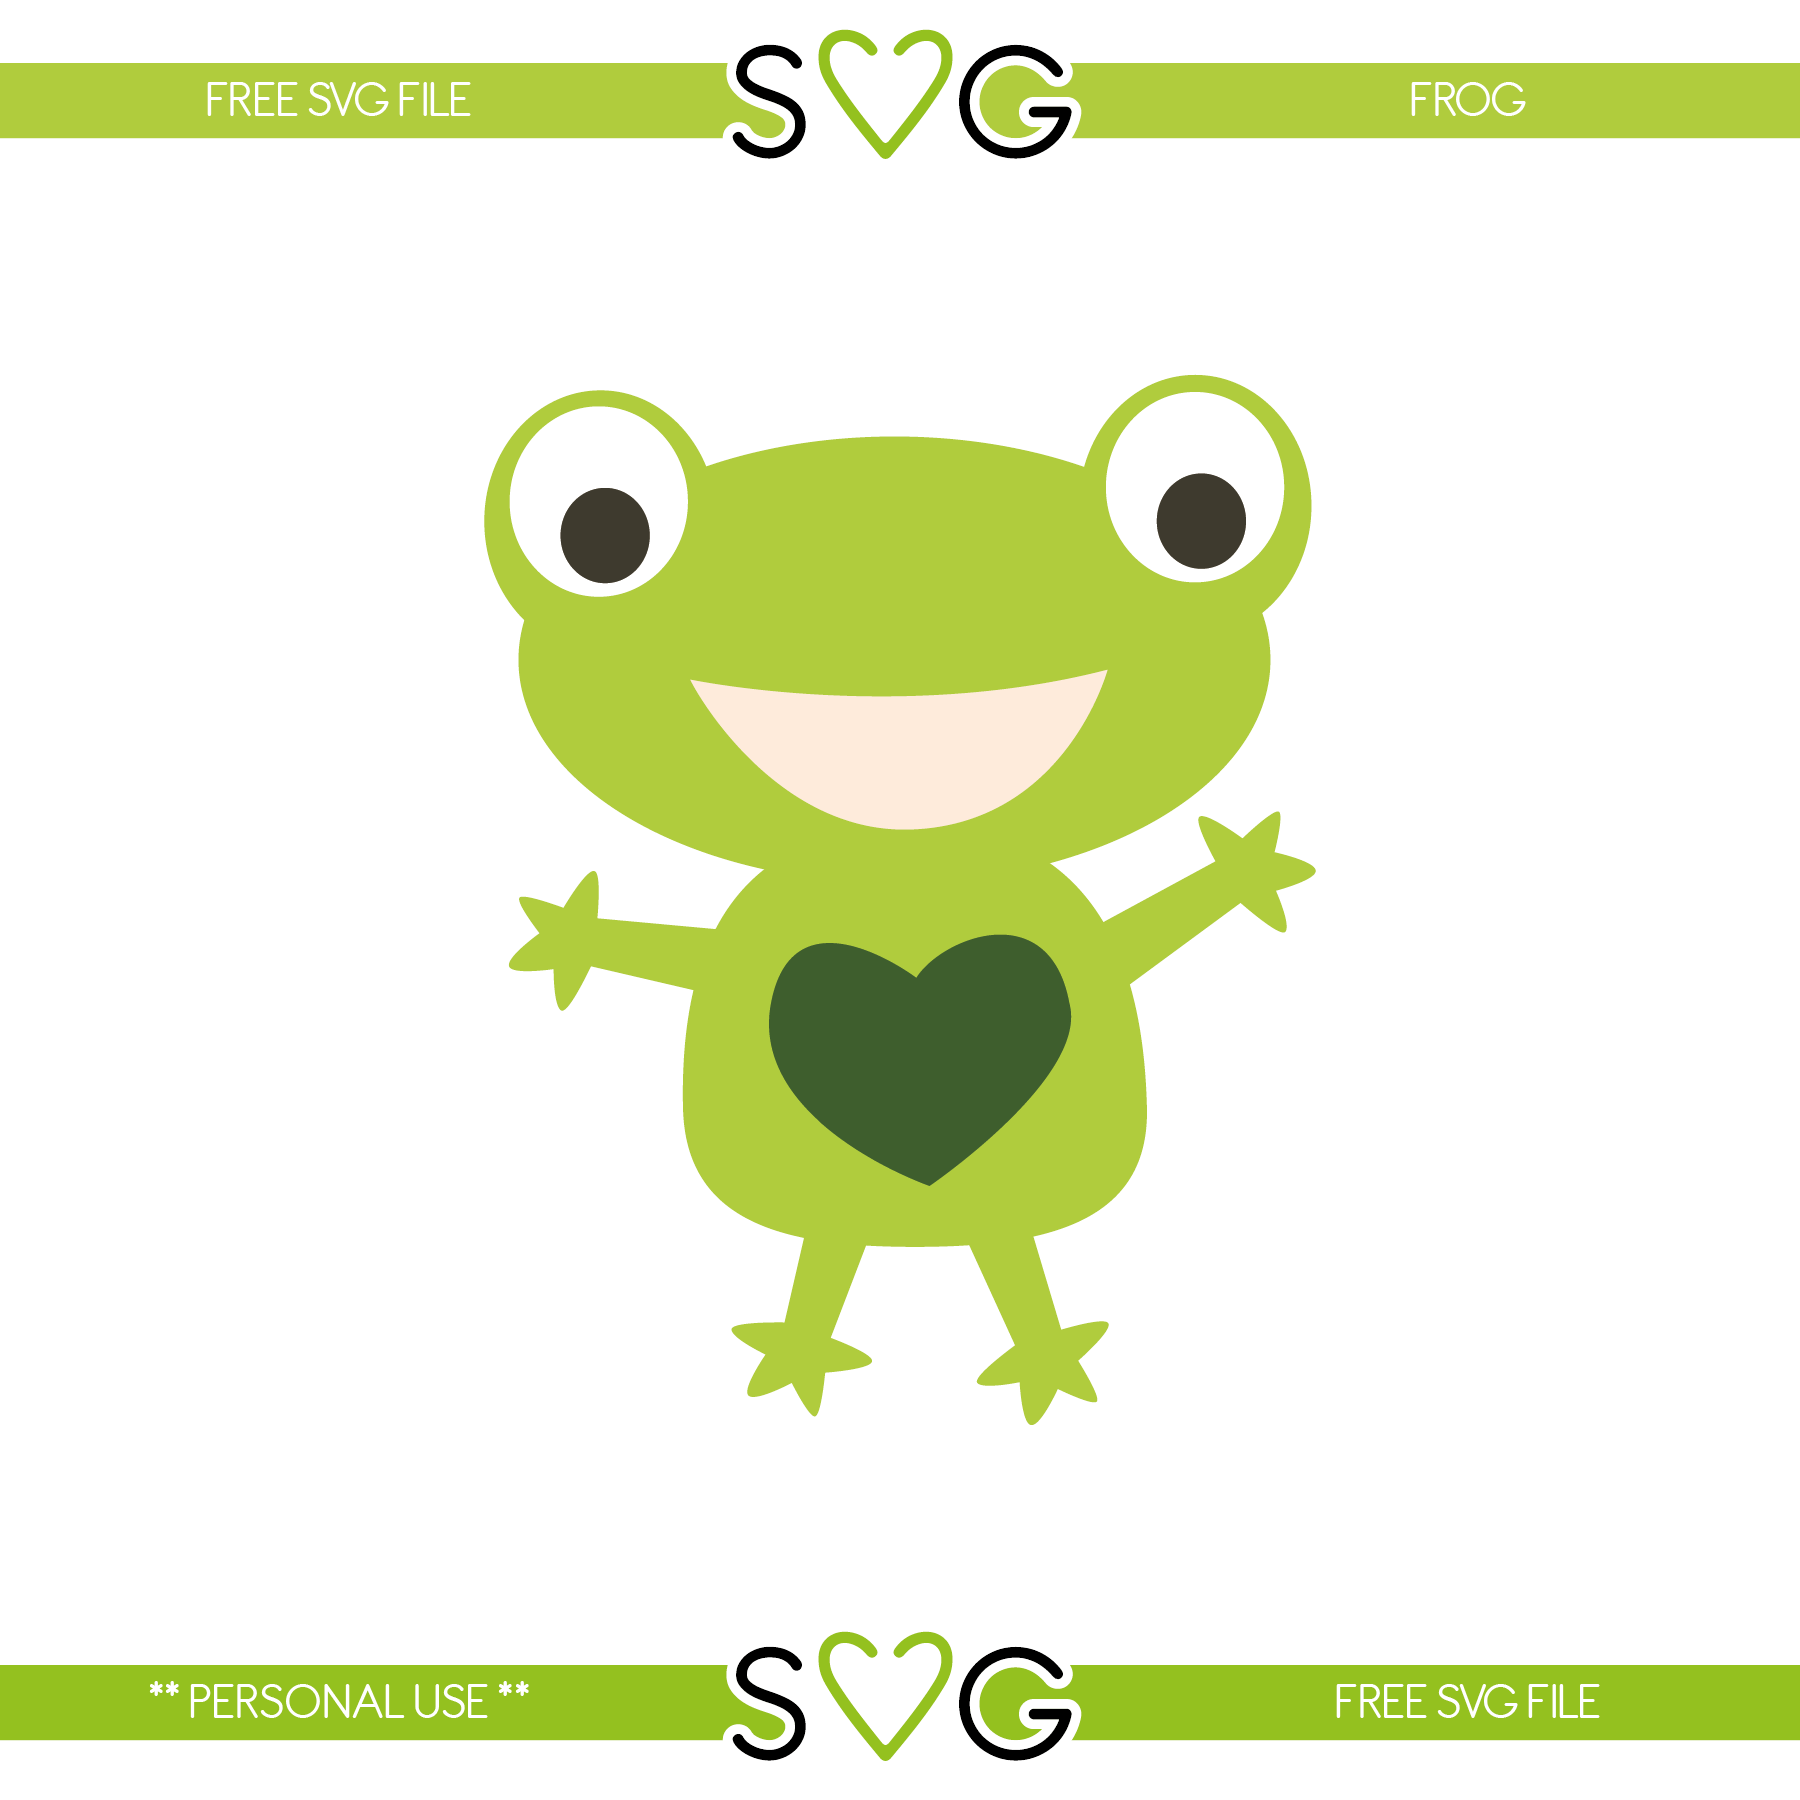 Frog svg #5, Download drawings